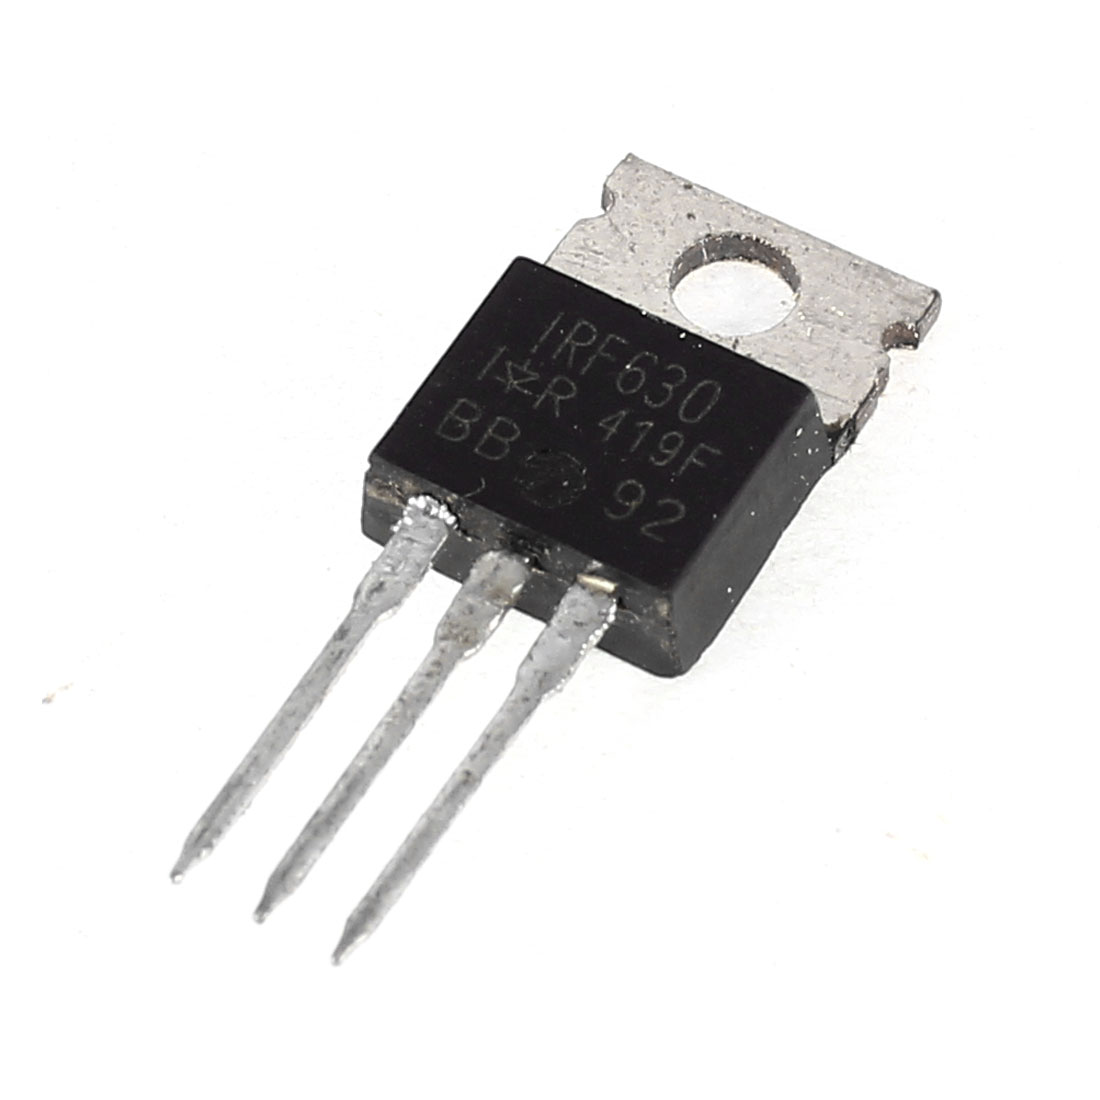 IRF630 High Voltage Semiconductor TO-3P 3 Pin NPN Power Transistor 200V 9.5A